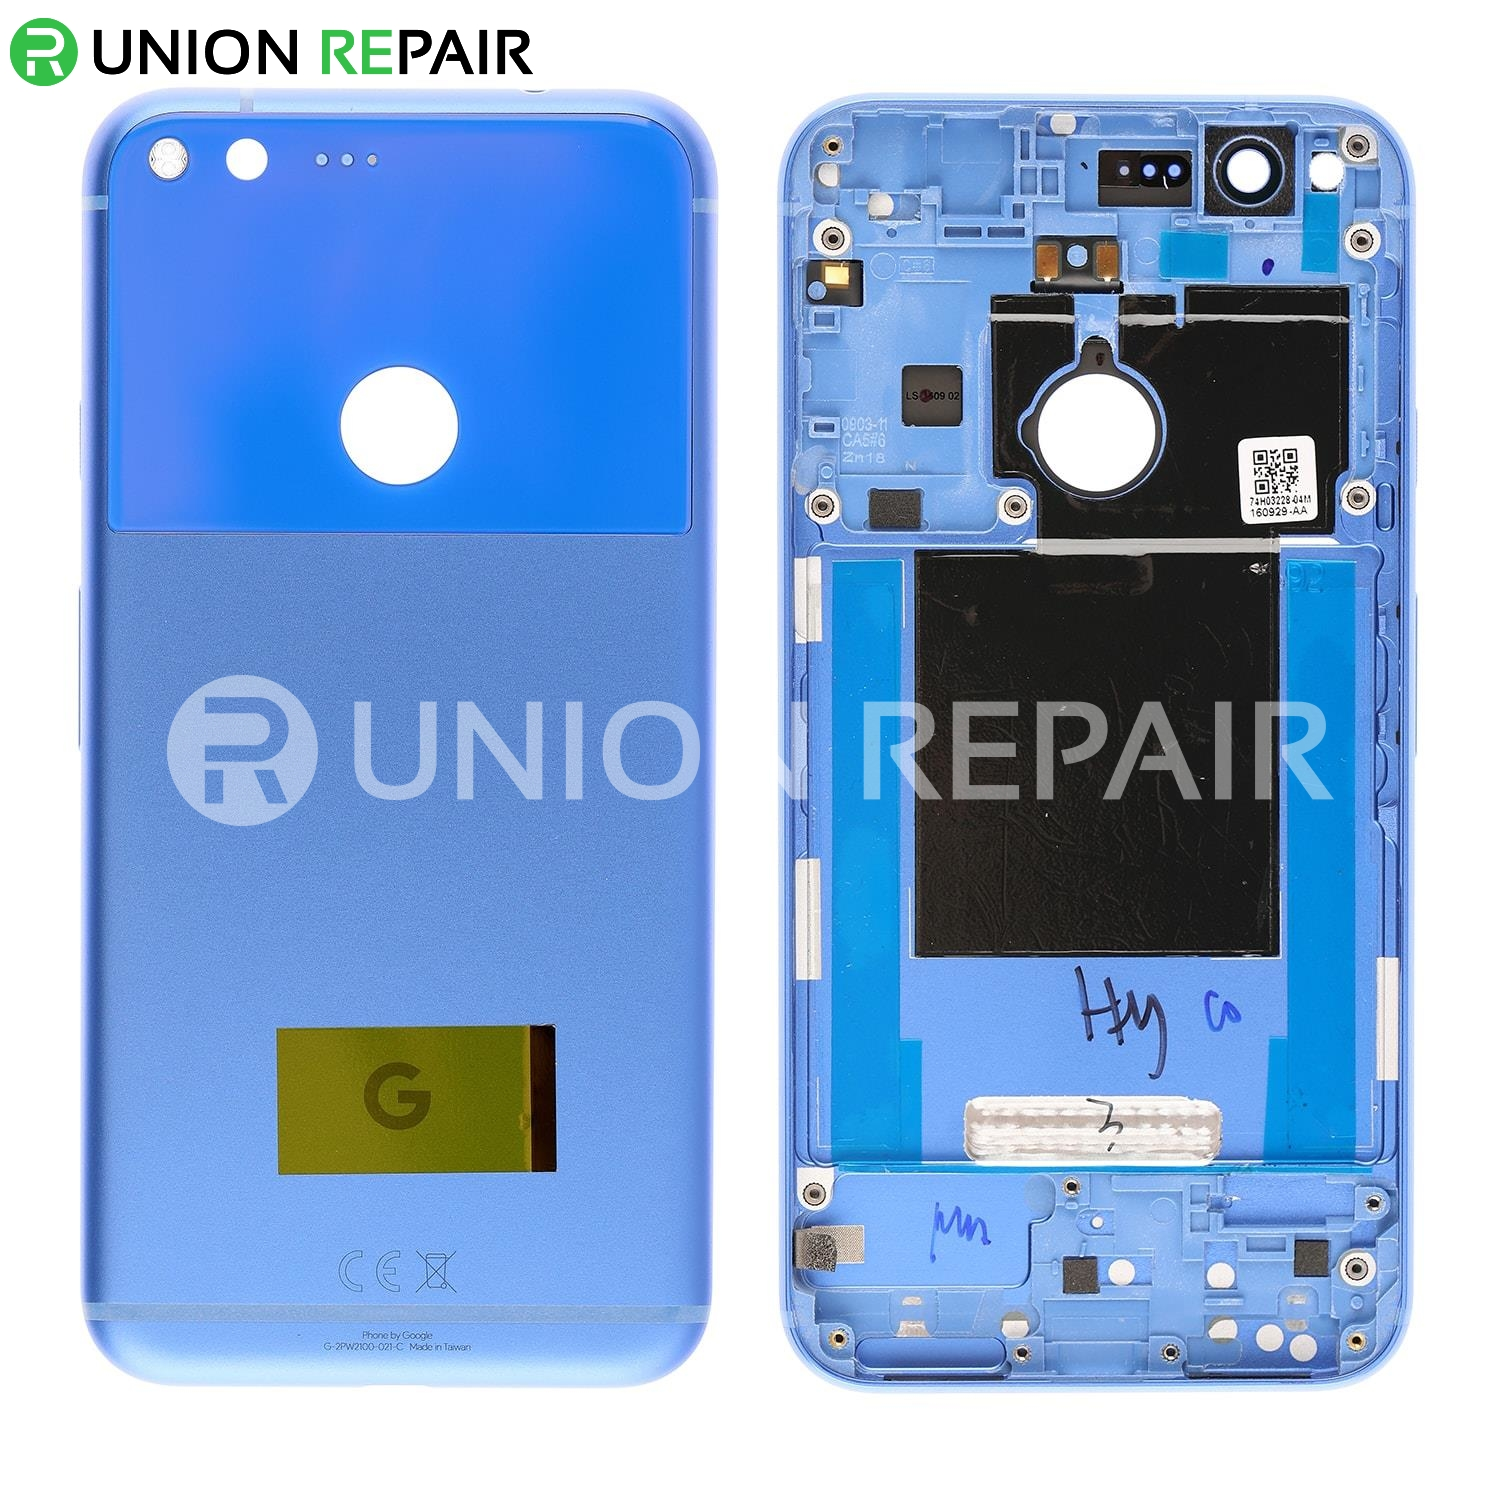 Replacement for Google Pixel XL Battery Door with Rear Housing - Blue  sc 1 st  Union Repair & for Google Pixel XL Battery Door with Rear Housing - Blue